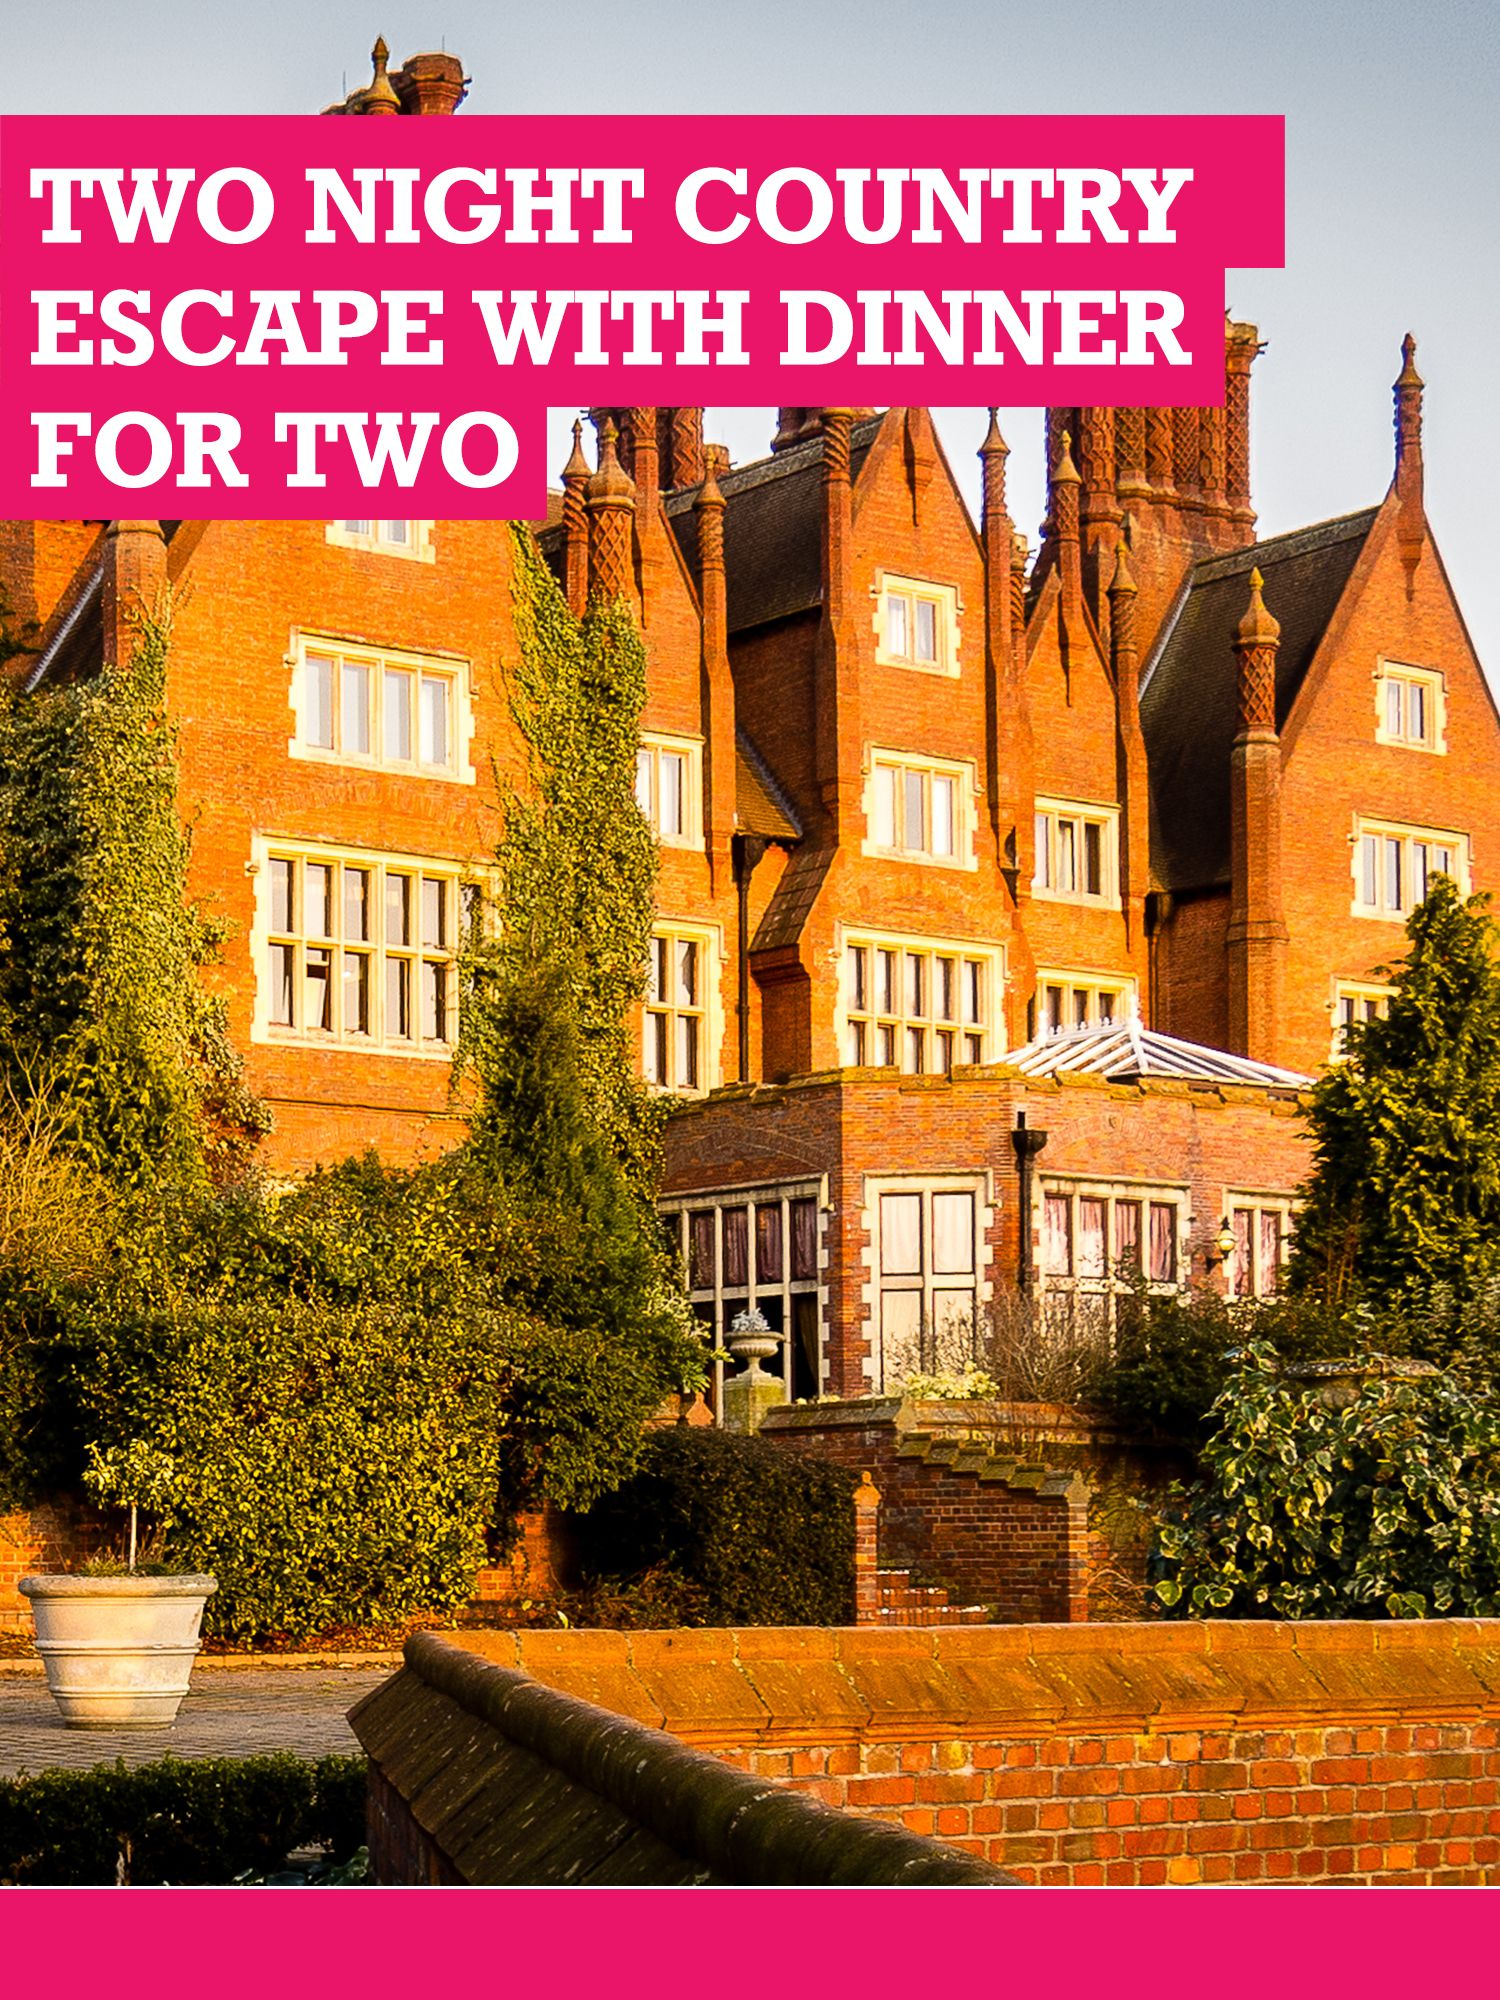 Buyagift Buyagift Two Night Country Escape With Dinner For Two